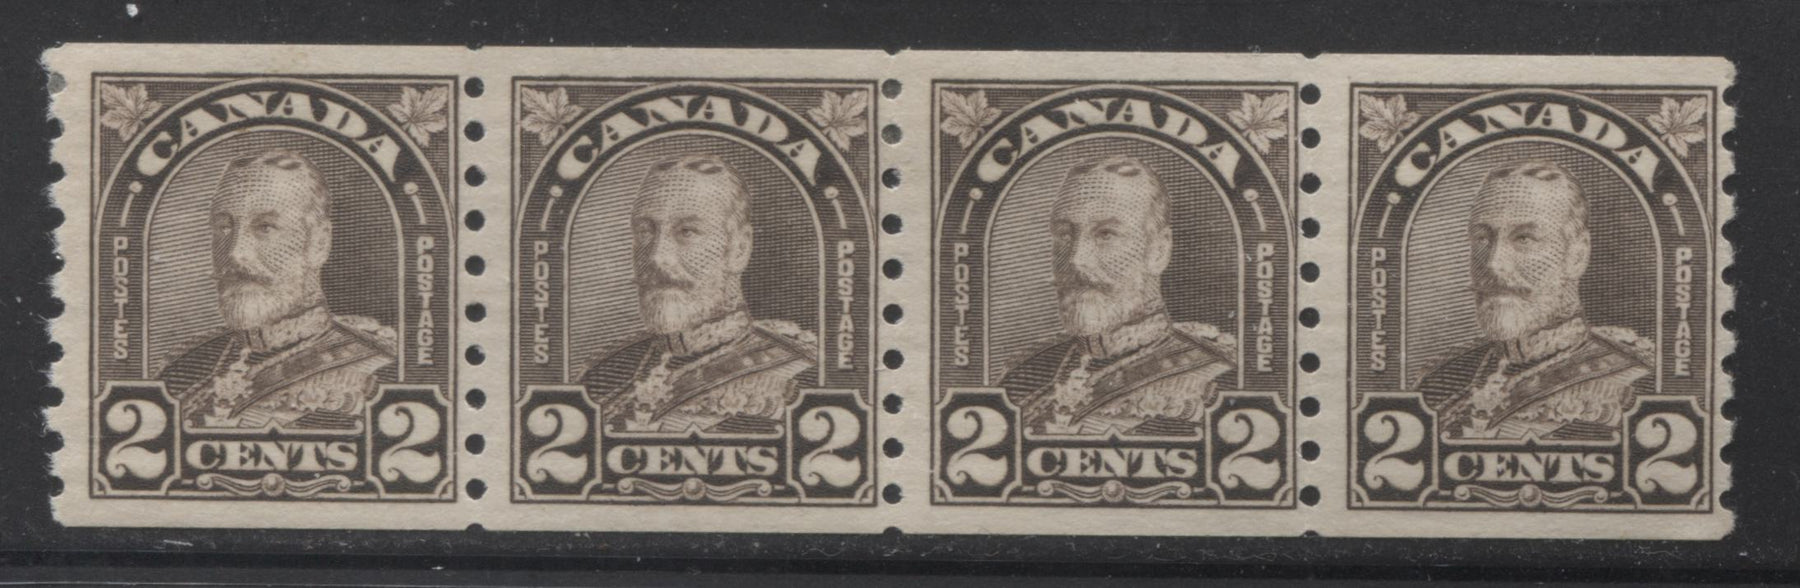 Canada #182 2c Blackish Brown, King George V 1930-1935 Arch Issue Fine Mint OG Coil Strip Brixton Chrome